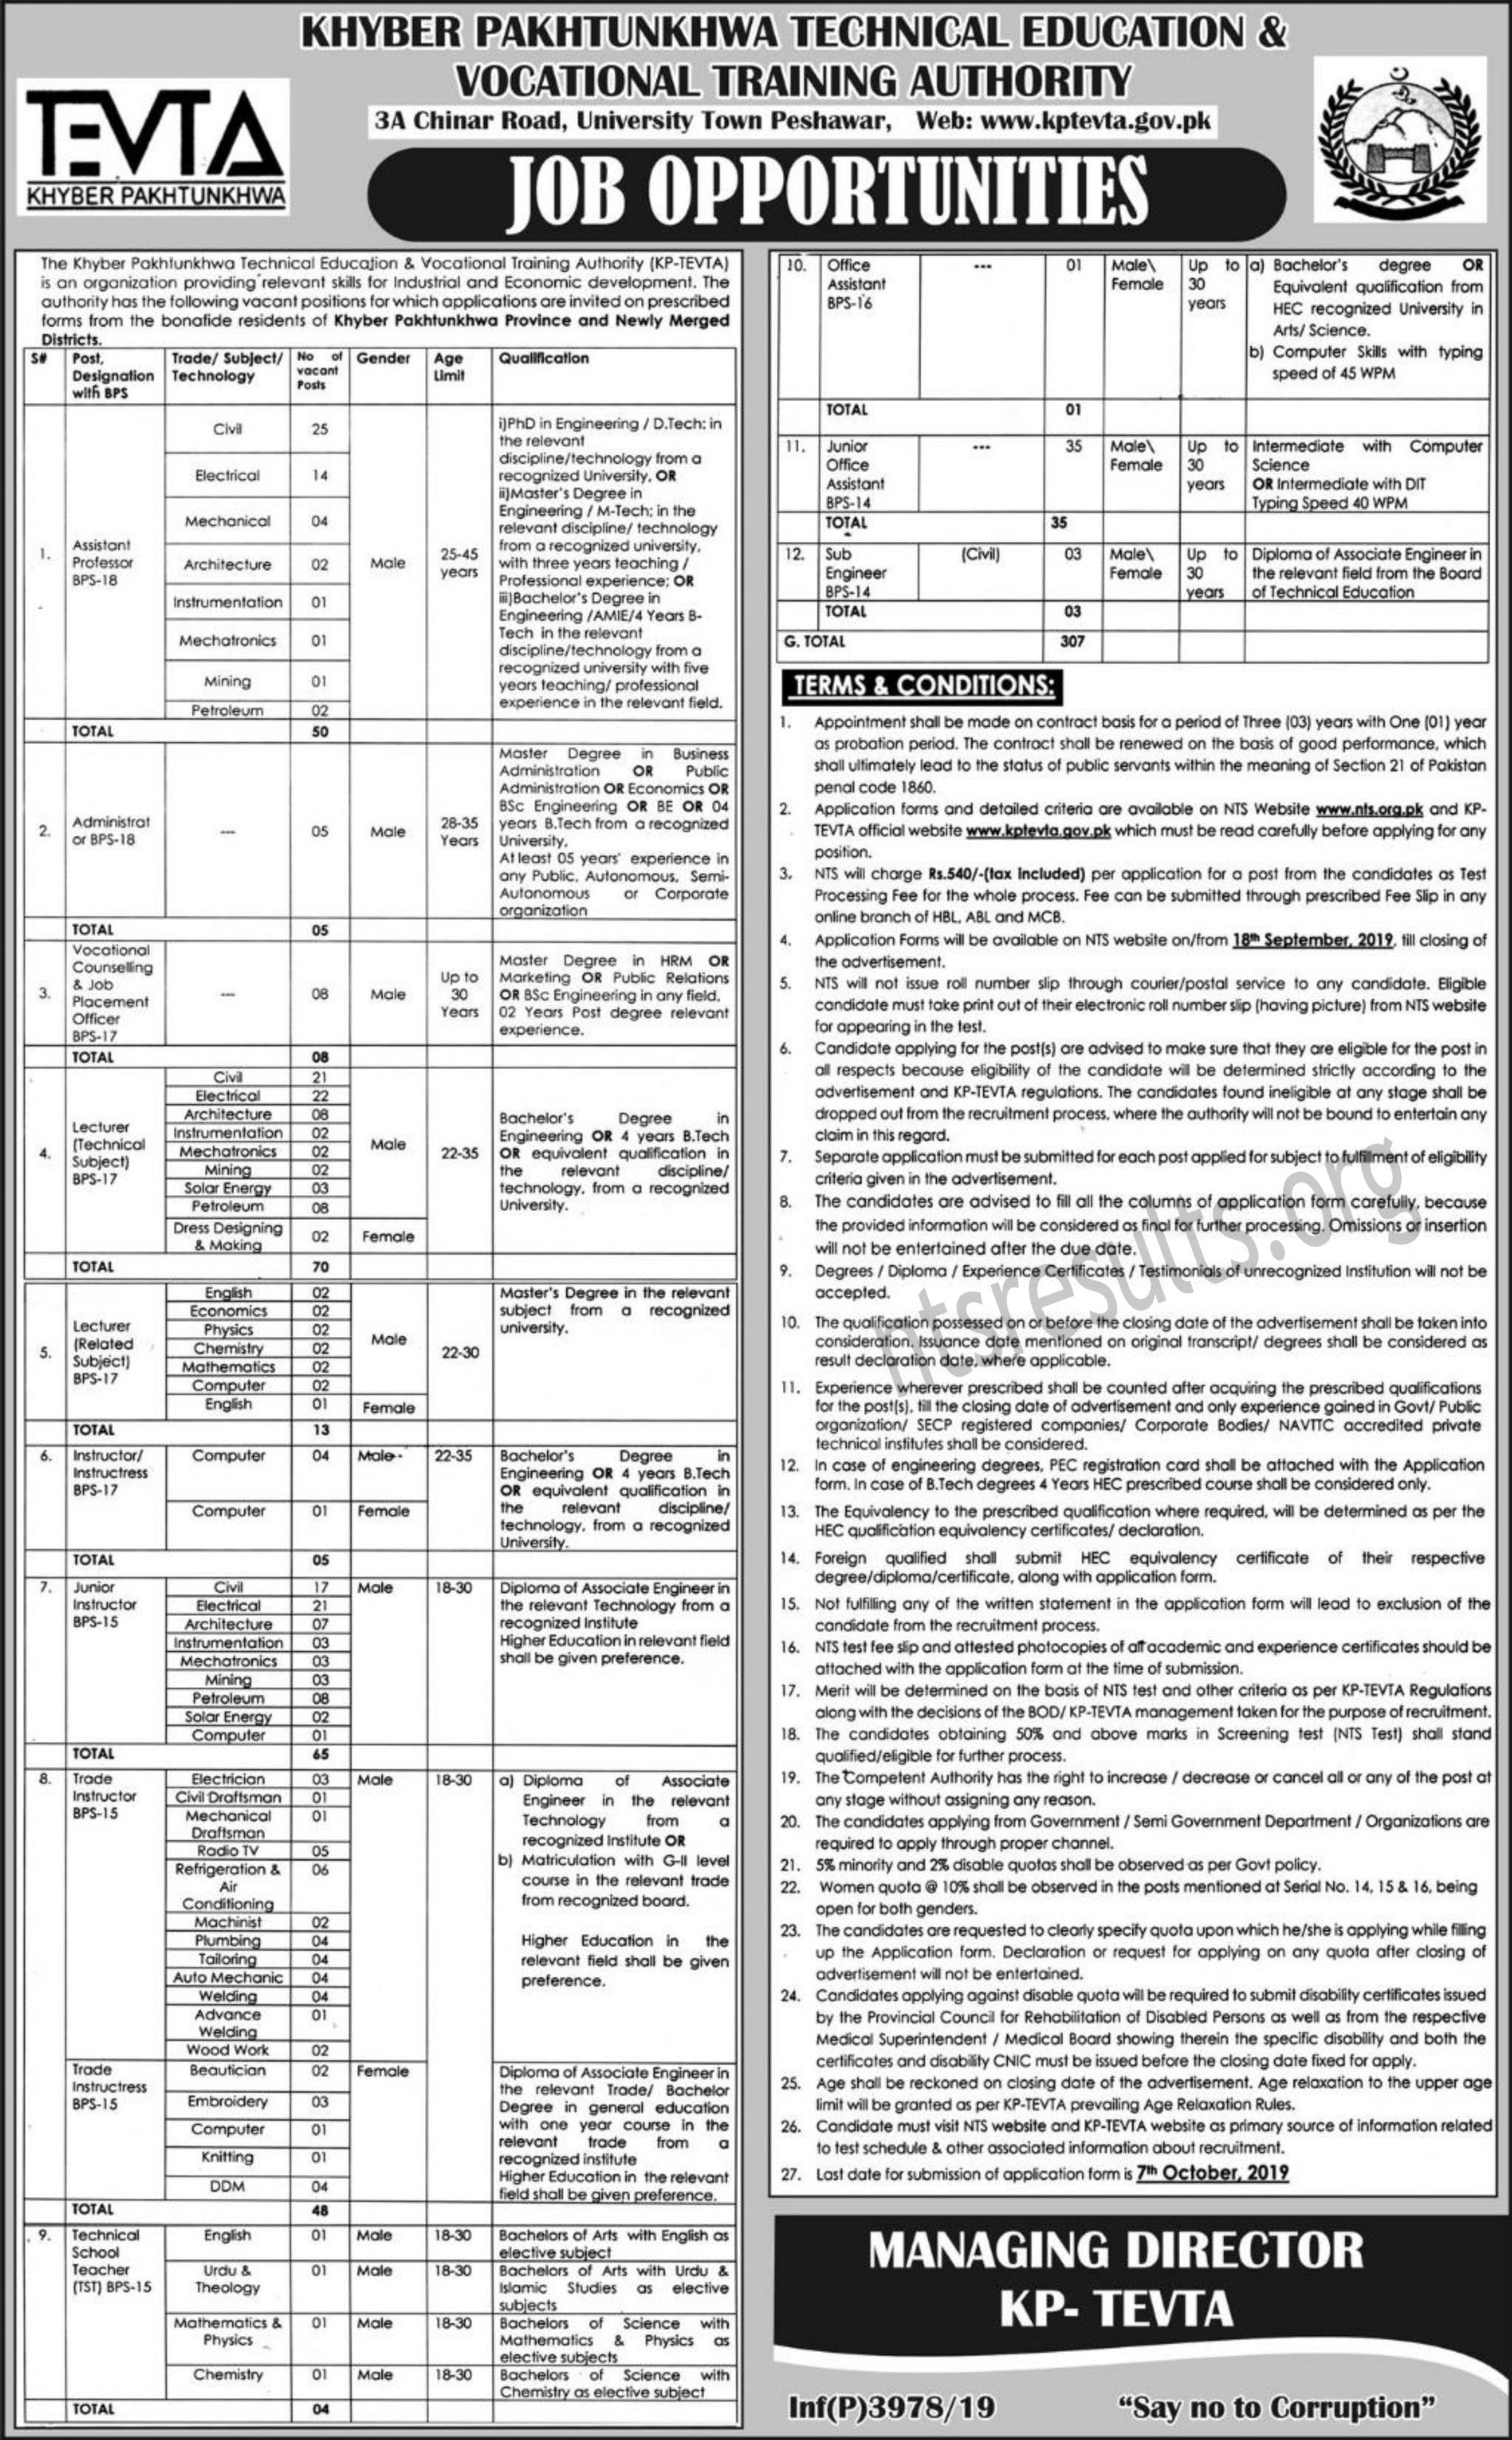 KPK Tevta Technical Education Vocational Training Authority NTS Test Roll No Slip Skill Test for the post of Office Assistant & Junior Office Assistant